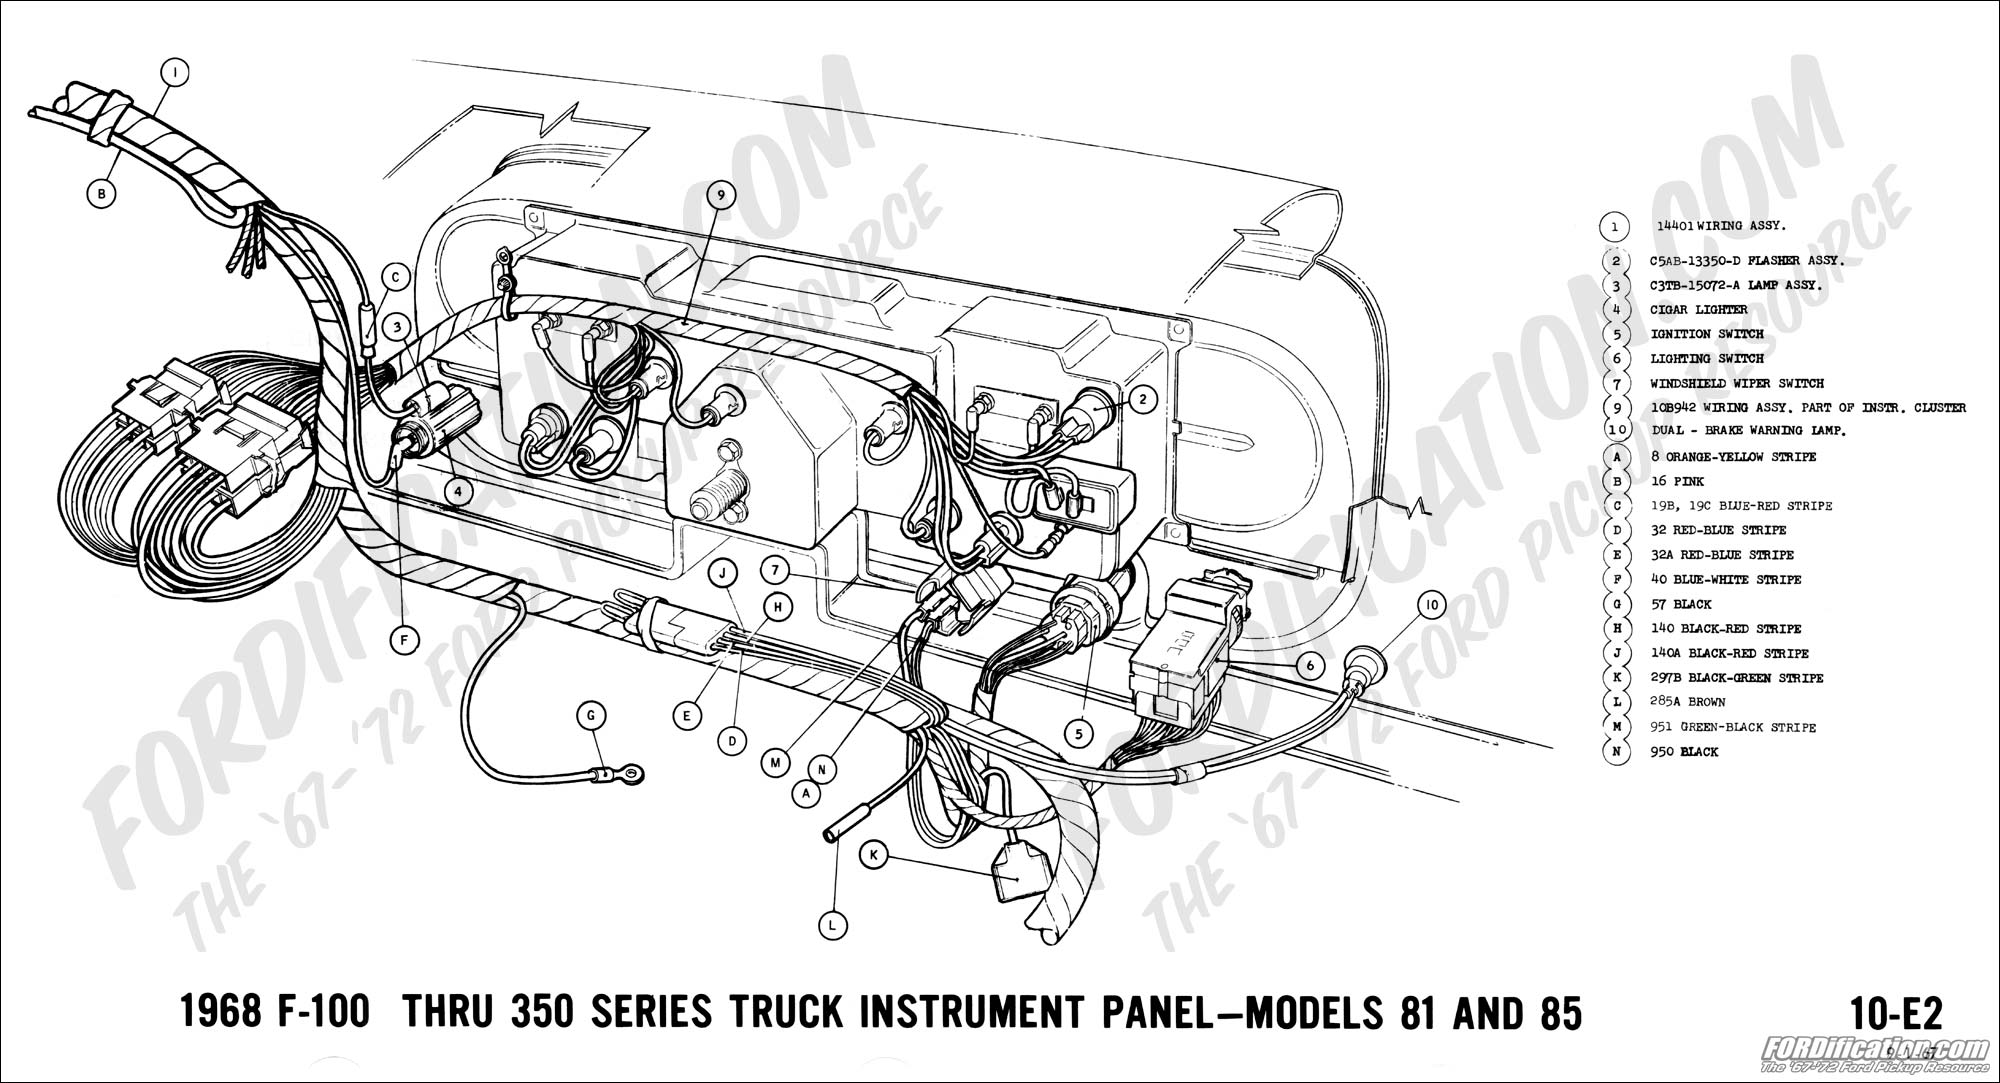 Solenoid Switch Wiring Diagram additionally QS4k 13281 as well Diagram view as well Wiring Diagram 94 Ford Bronco furthermore 89 Jeep Yj Gauge Wiring Diagrams. on 1989 dodge wiring diagrams